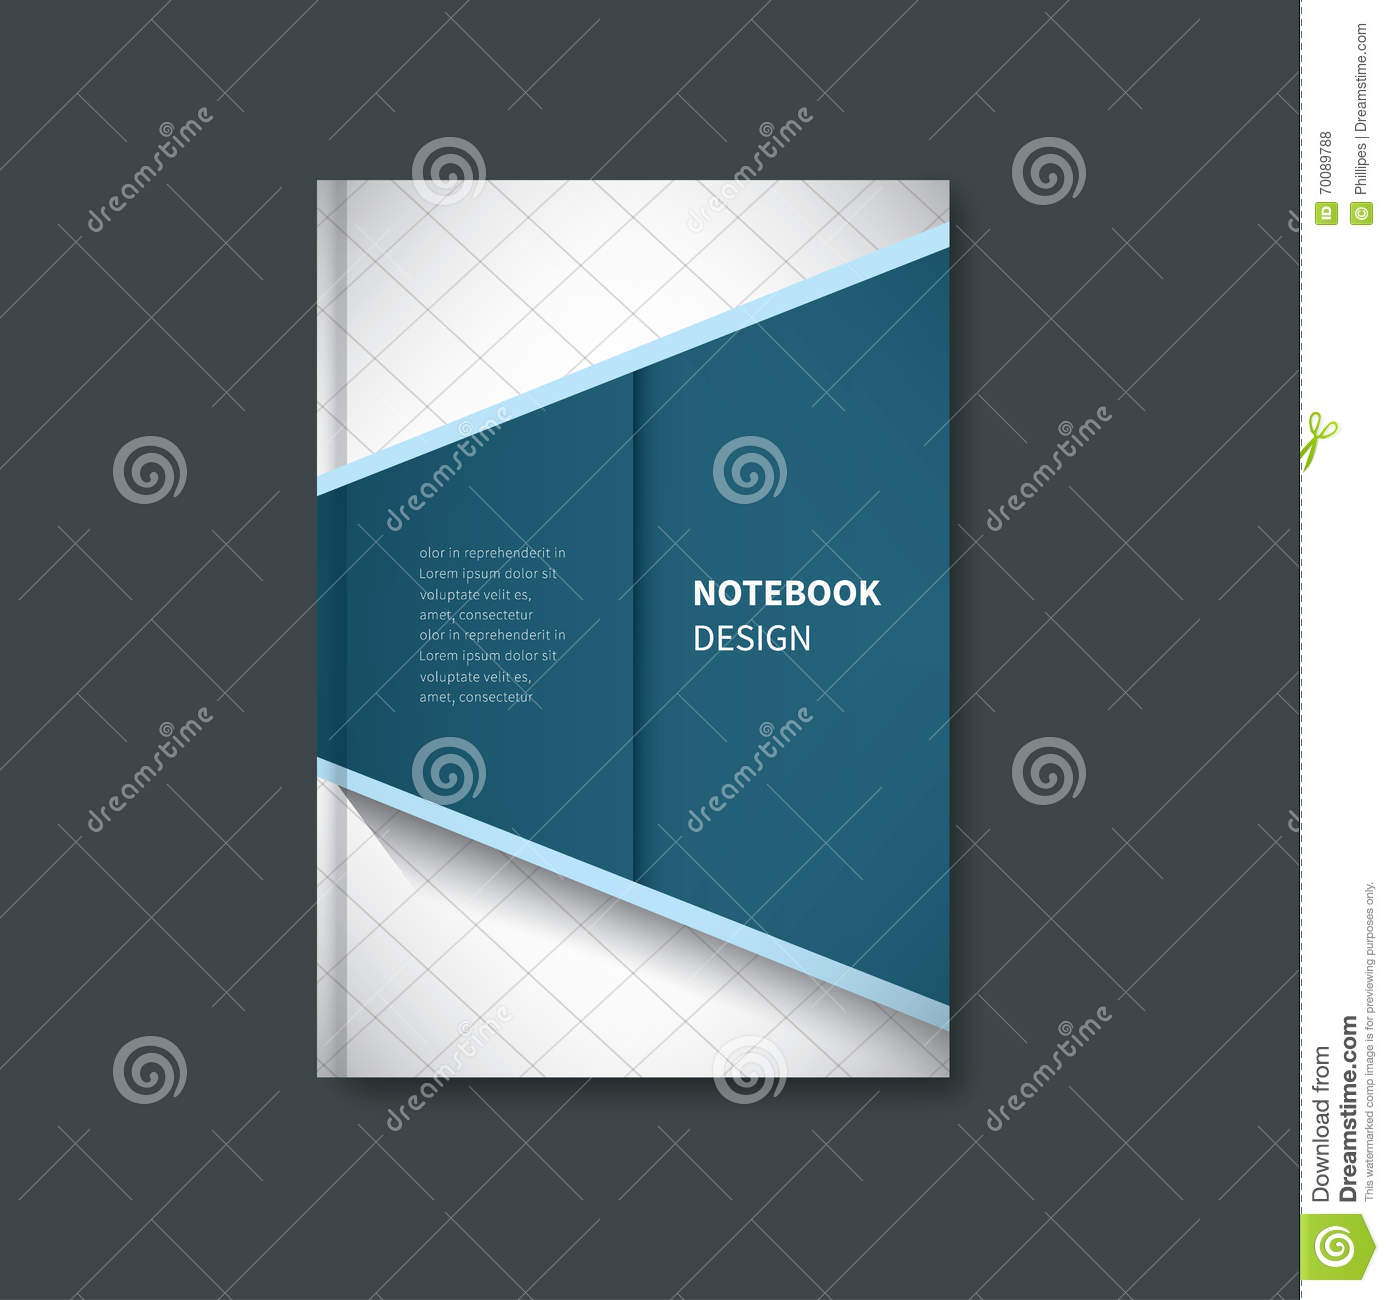 notebook first page cover design stock vector image  notebook first page cover design